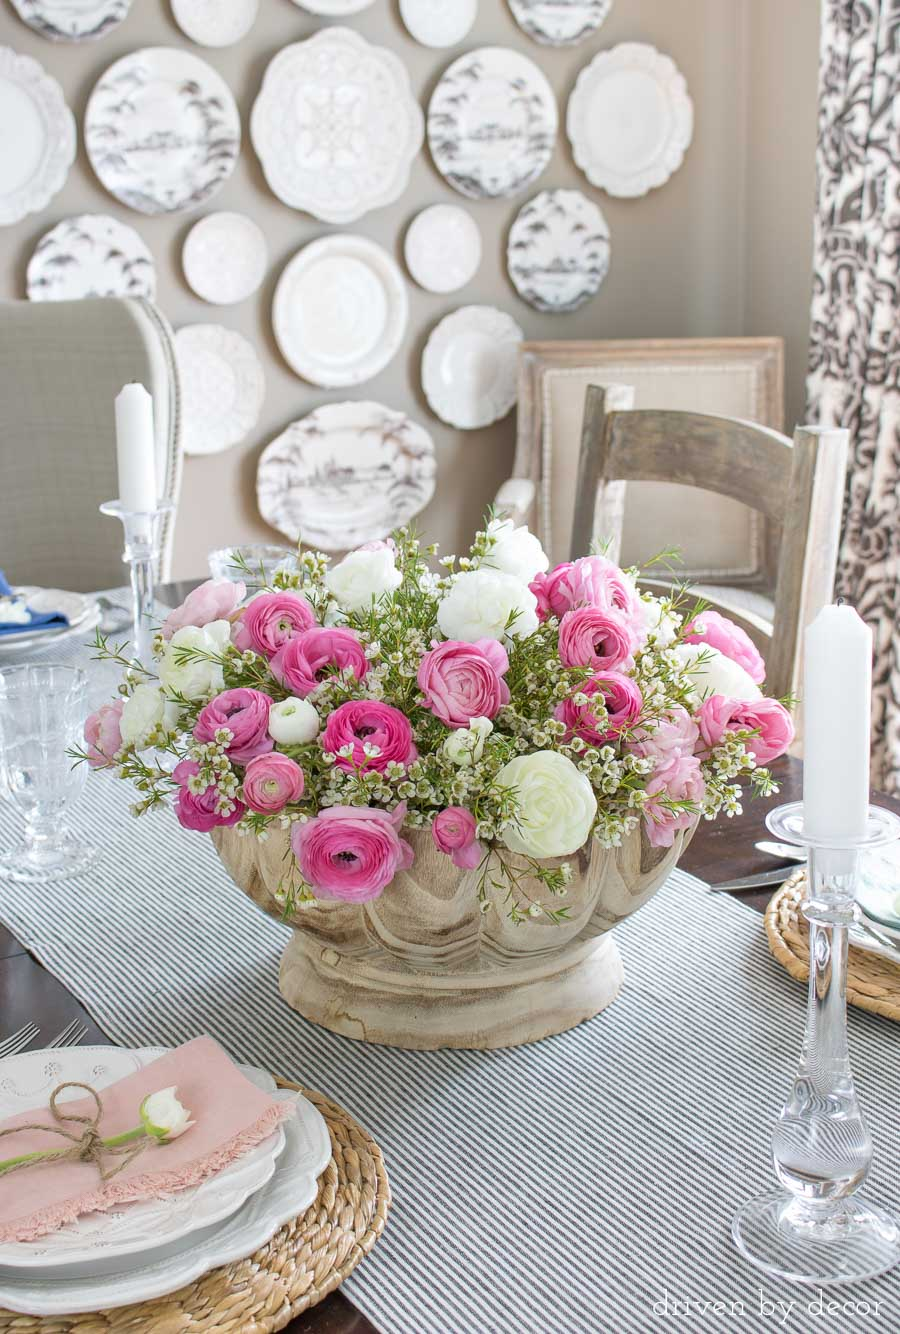 Fill a bowl or vase with a mix of ranunculus and wax flowers for a beautiful, simple spring table decoration!